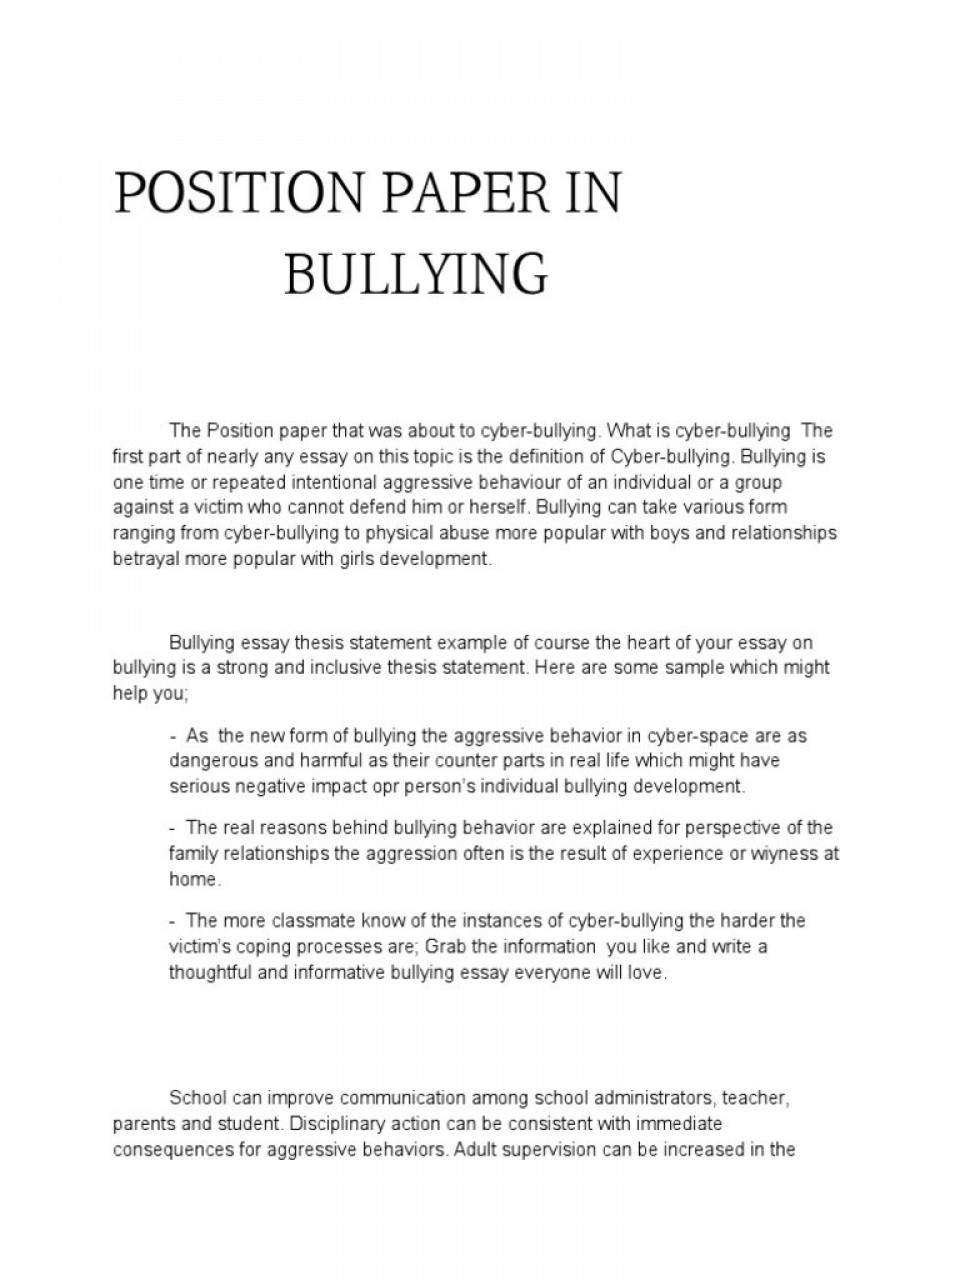 005 Bullying Essay Example Good Conclusion For Academic Writing Service Cause And Effect On In Awful Topics Cyber Titles Persuasive Ideas 960